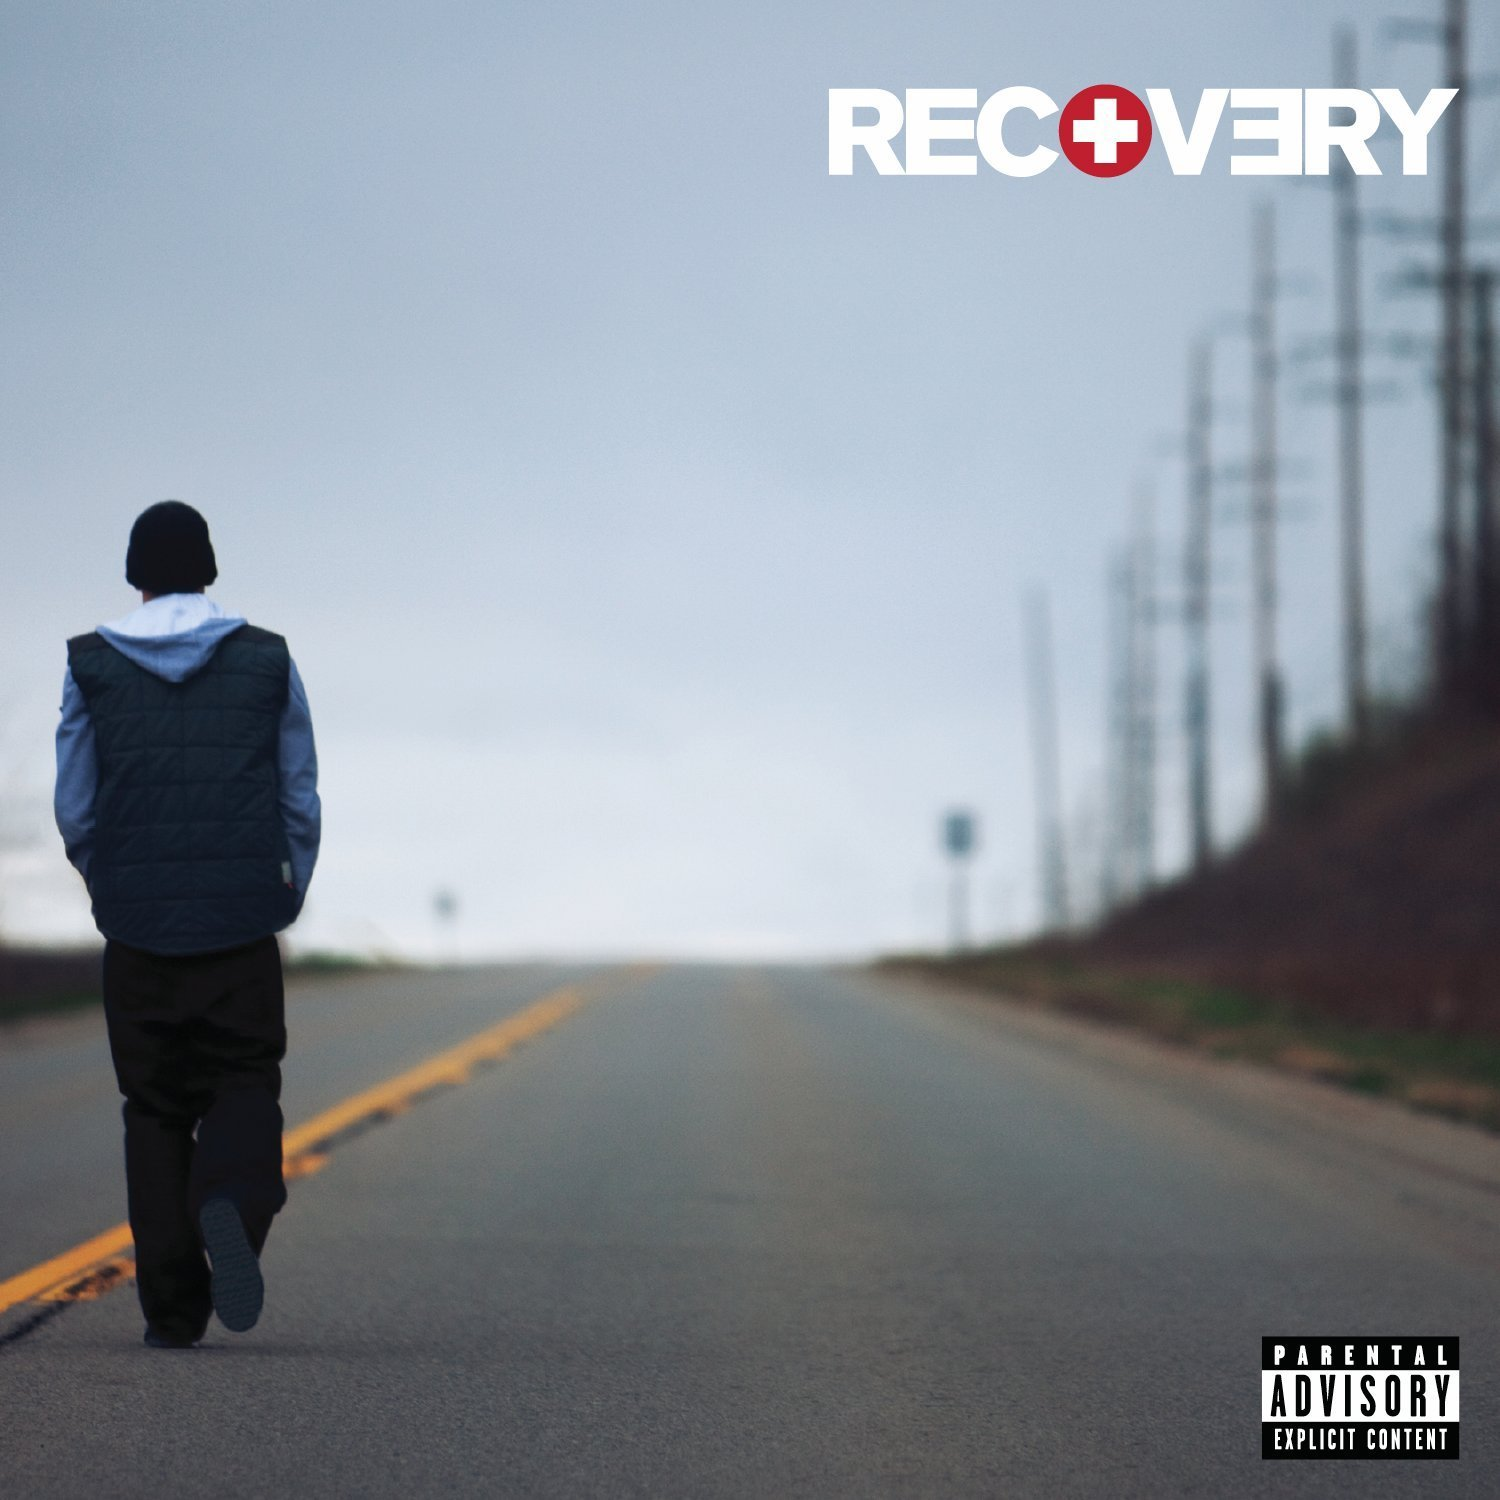 Won't Back Down (feat. P!nk)) - Eminem: Testo (lyrics), traduzione e video